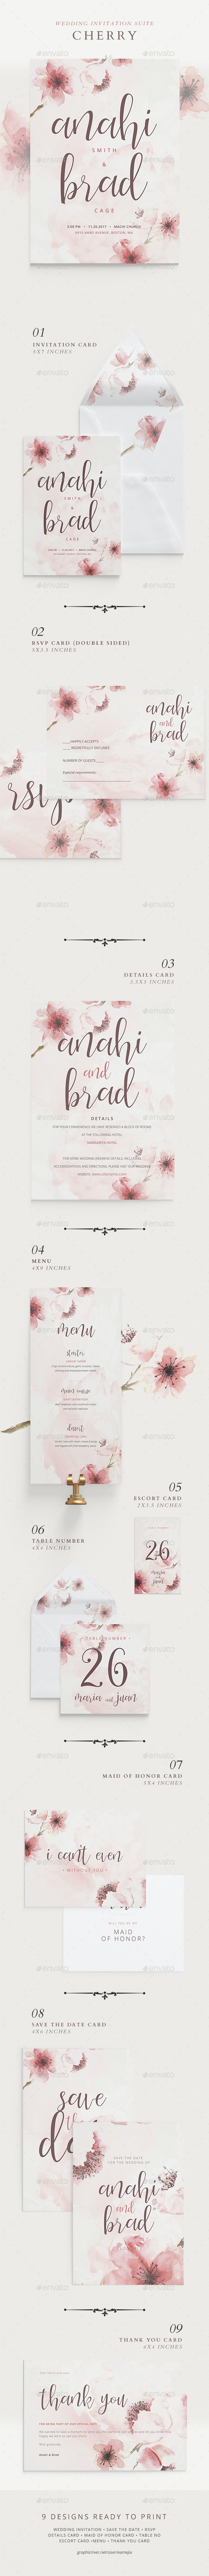 Wedding Invitation Suite - Cherry - Weddings Cards & Invites